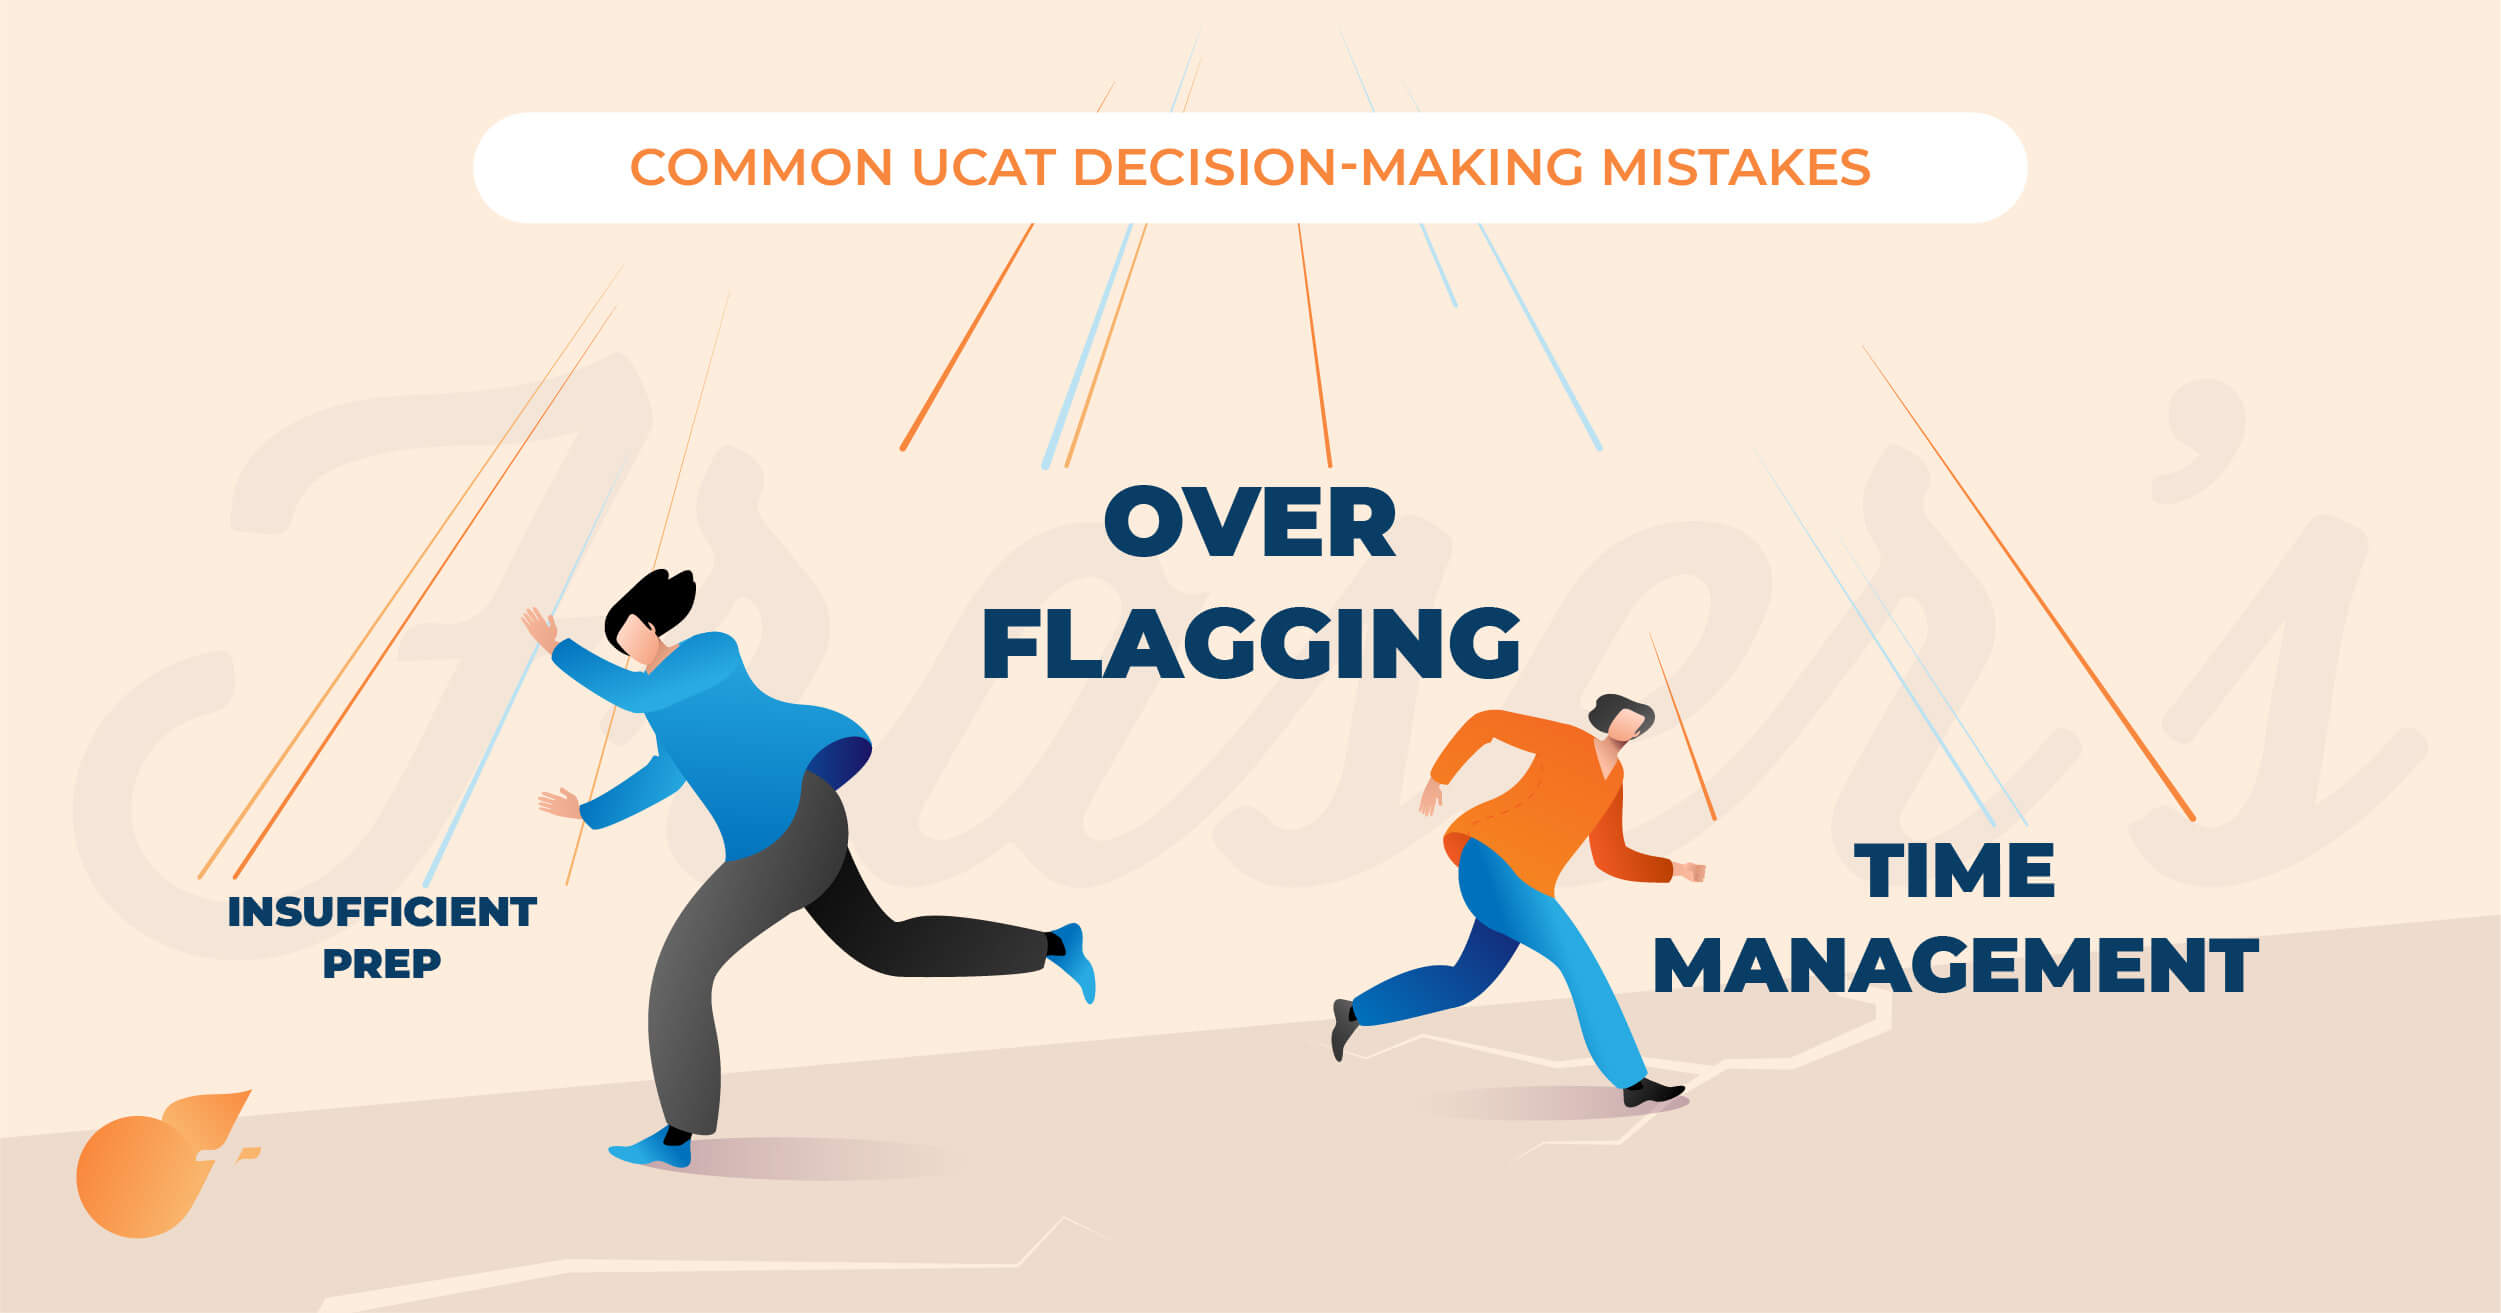 Common UCAT Decision-Making Mistakes